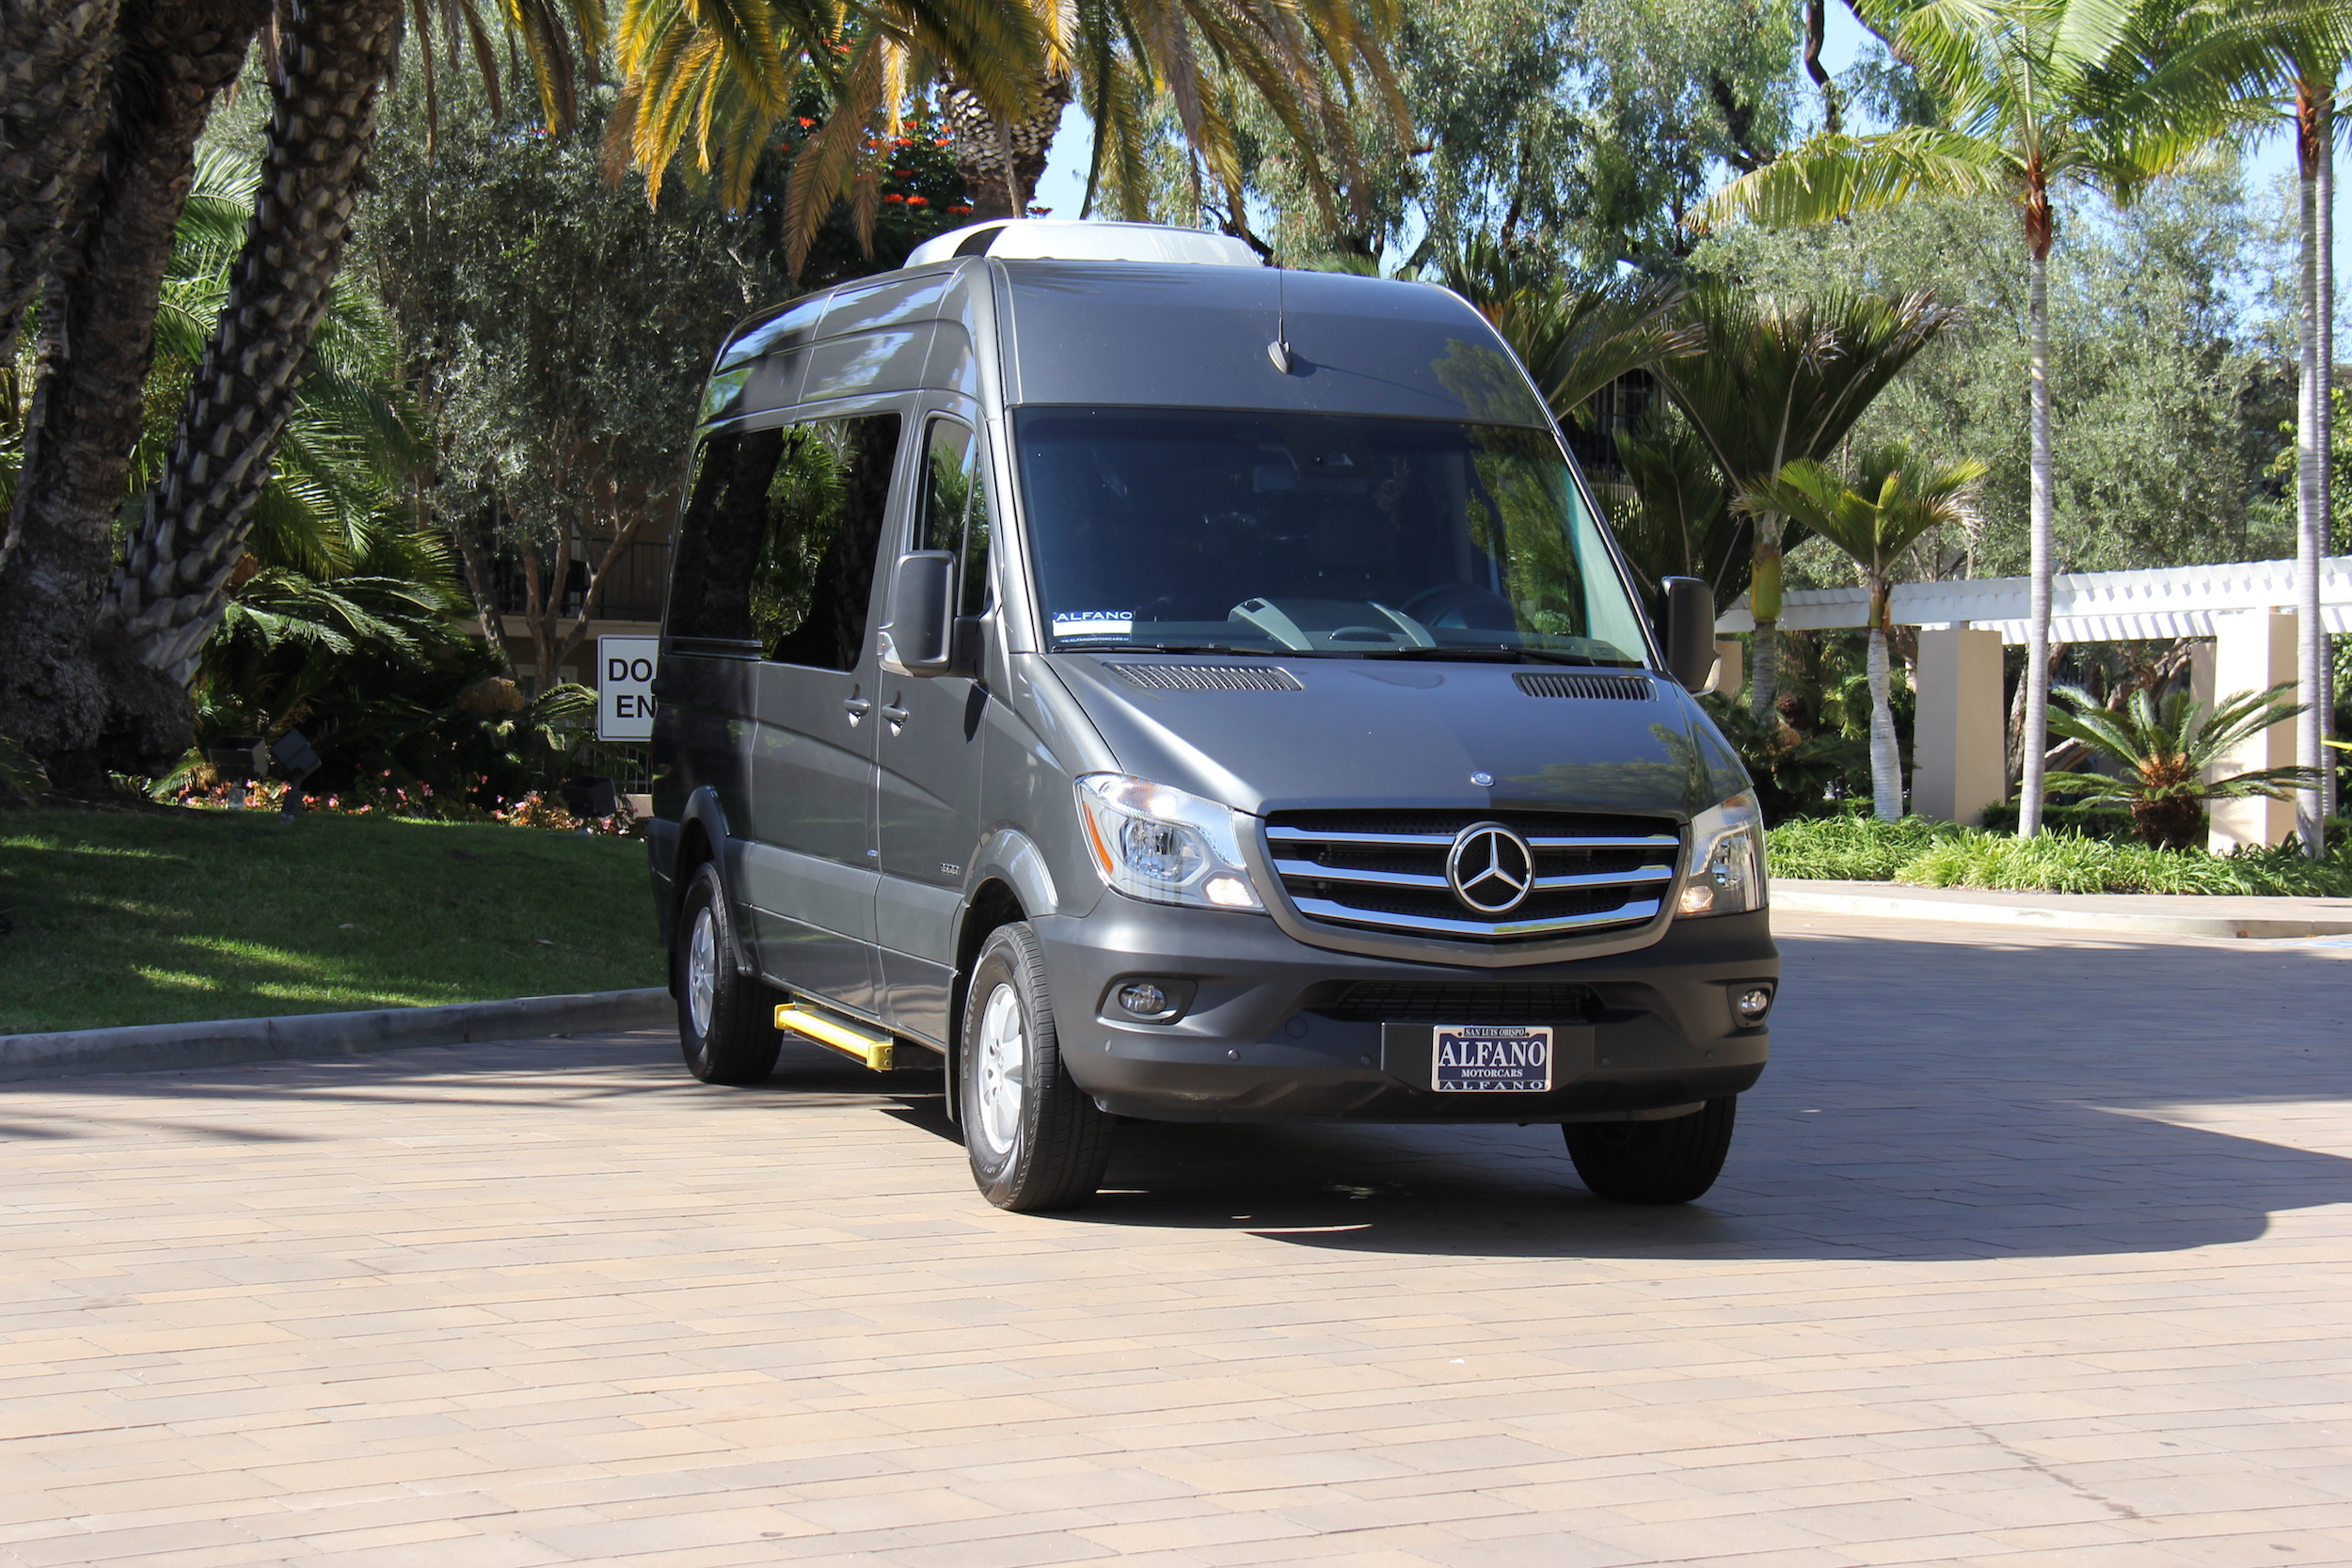 Ford Transit 12 Passenger Van >> Orange County Van Rental |orangecountyvanrental.com